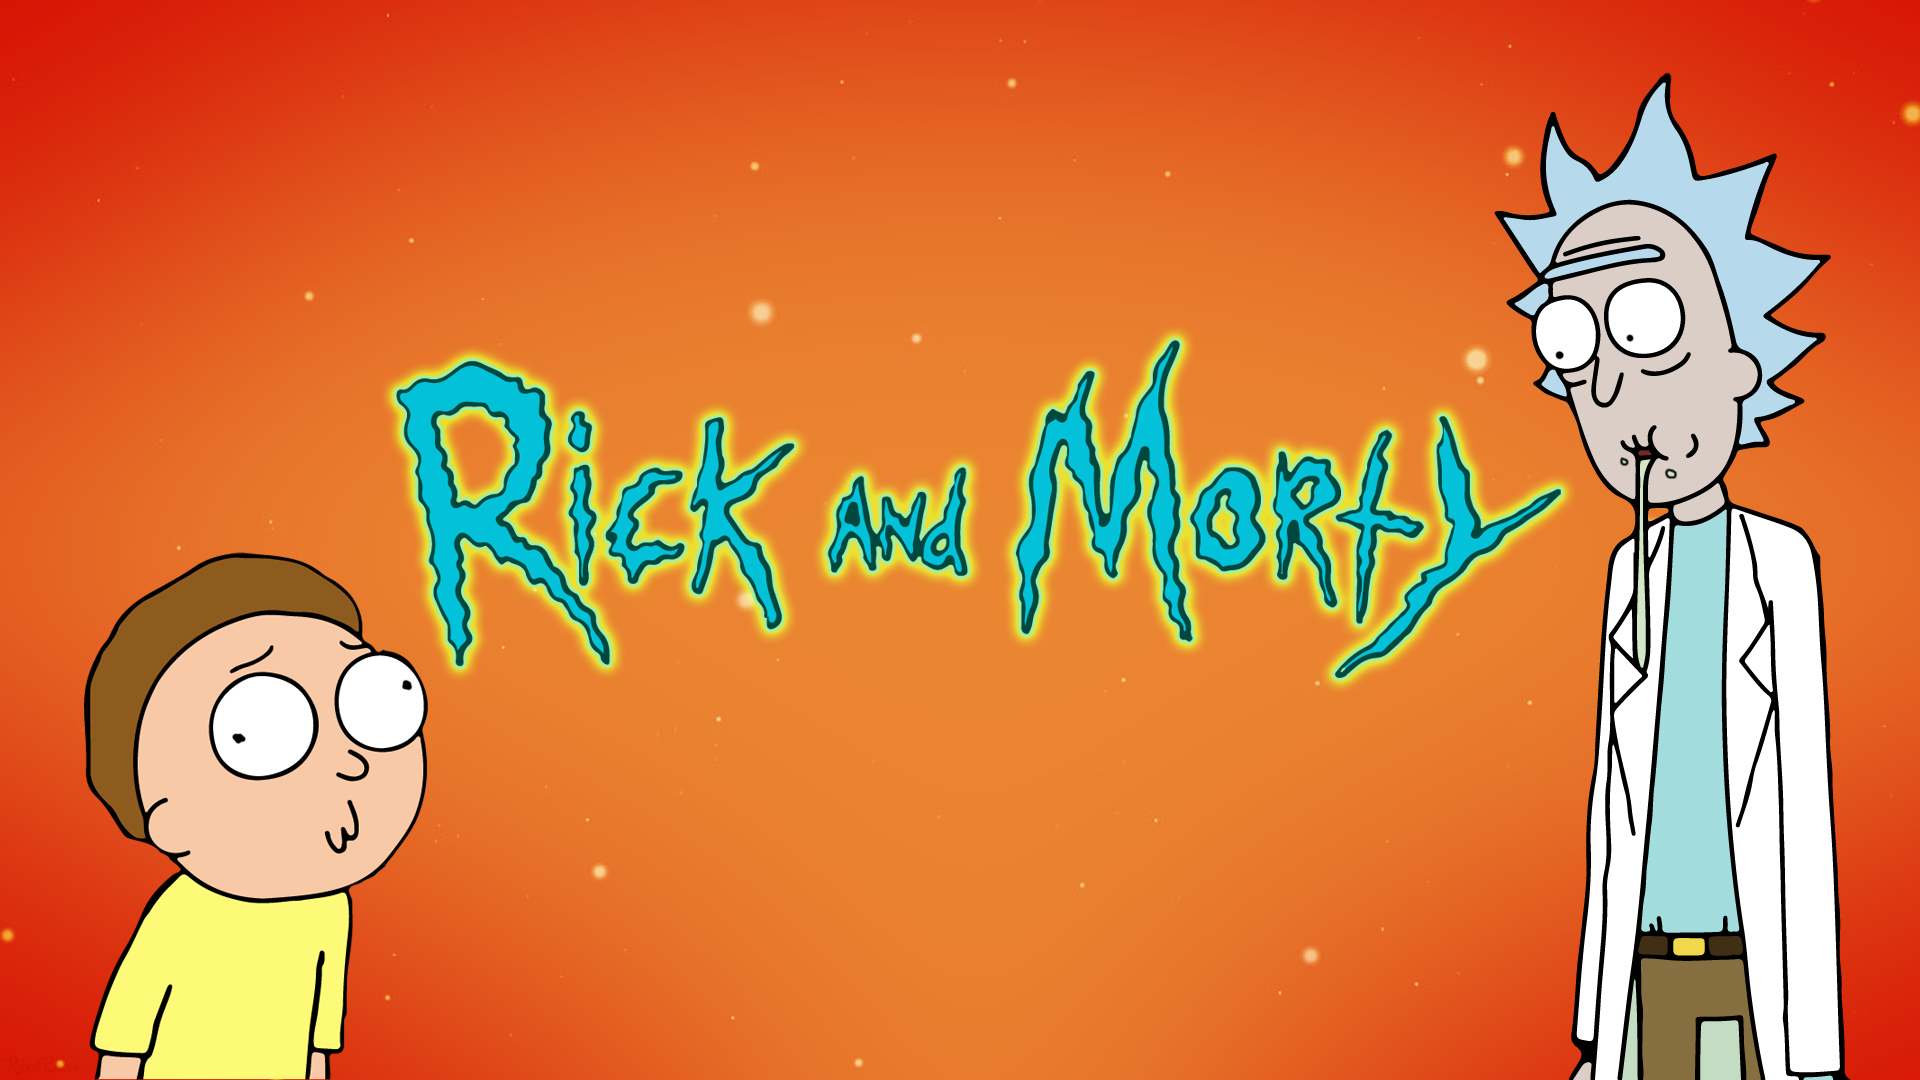 rick and morty - photo #20